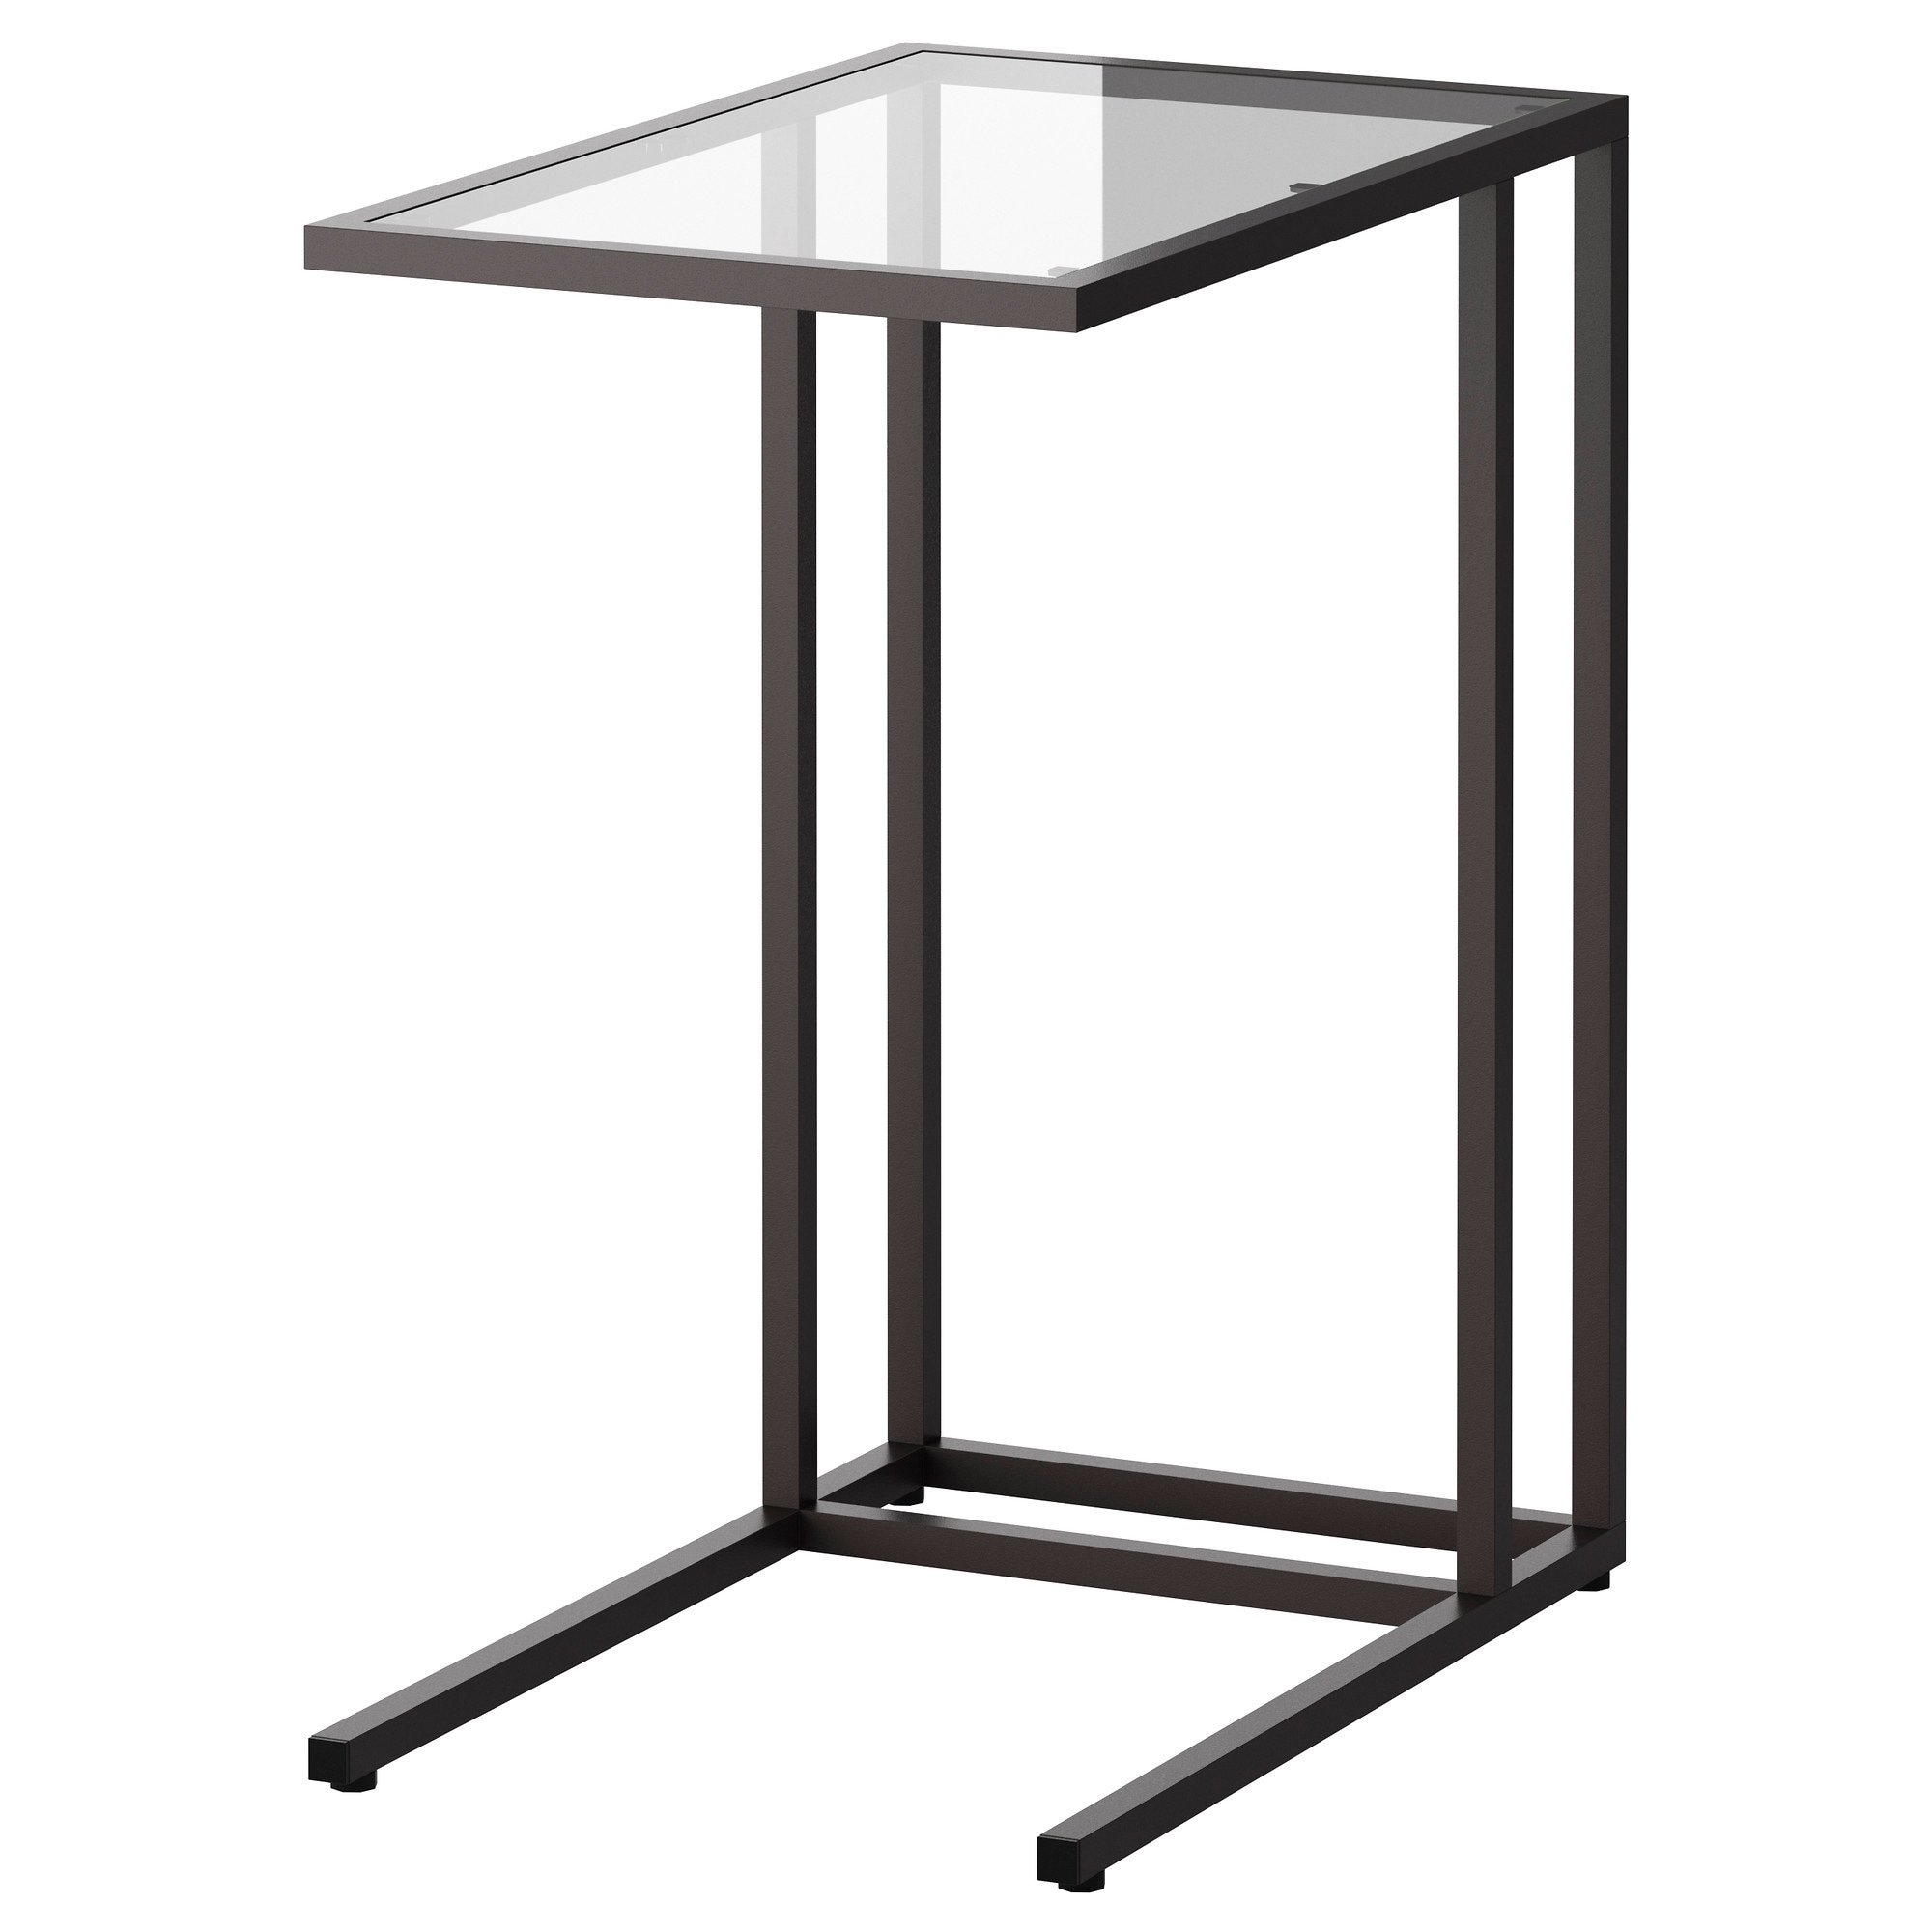 lack tables narrow luxury home graphics pictures relieving table fresh beautiful minimalist refinishing square coffee furniture of ikea side end glass in